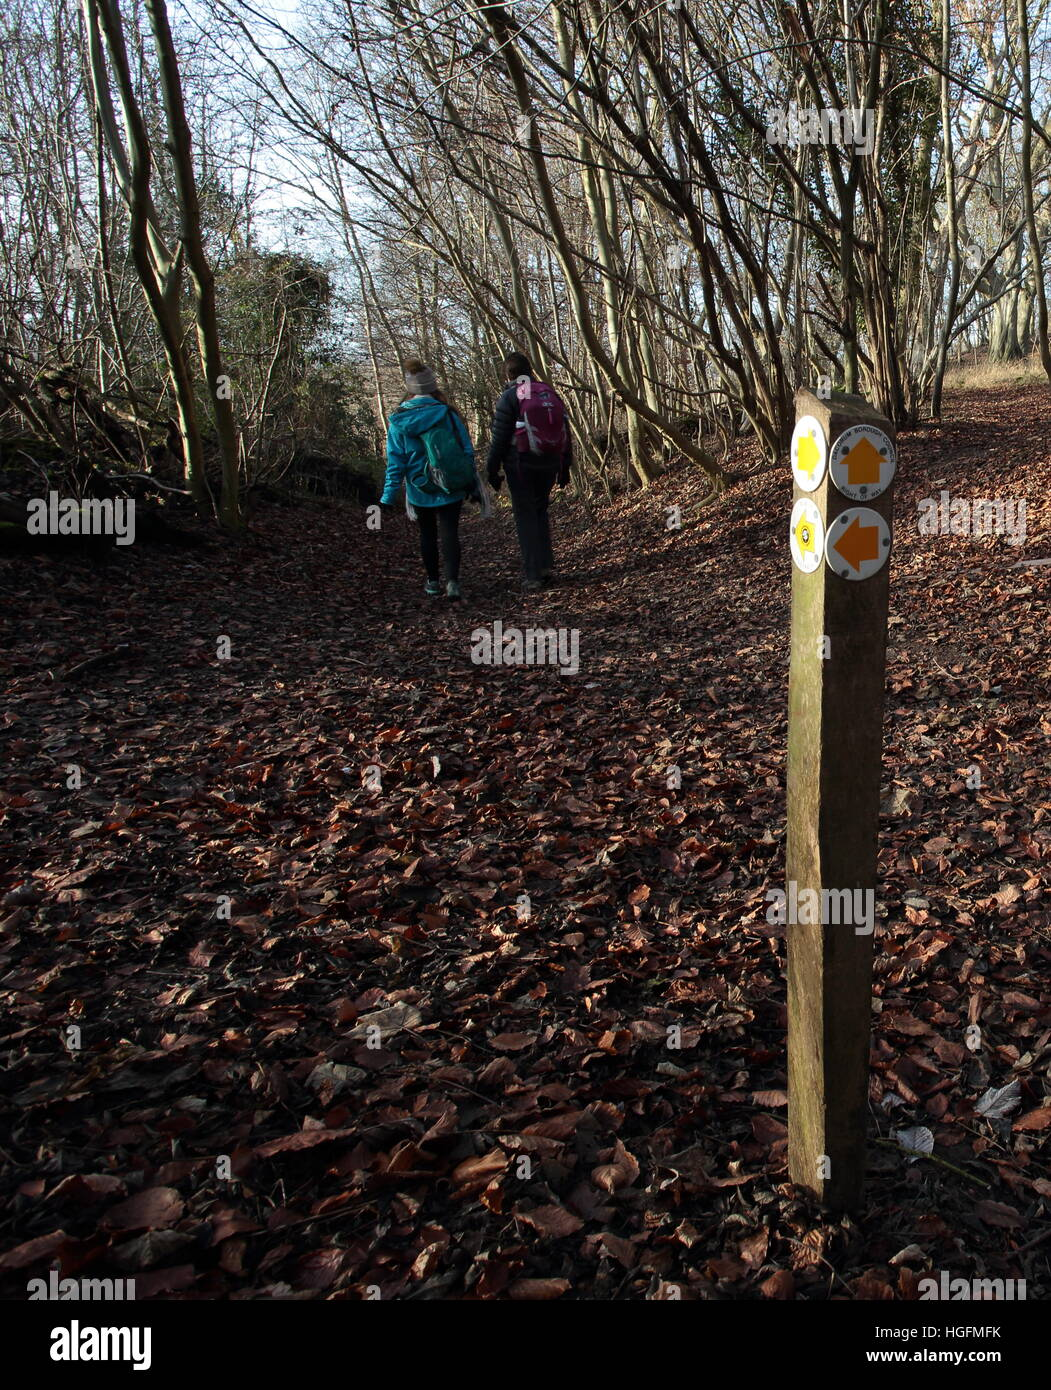 Two walkers on thhe Ridgeway in Hertfordshire,with a footpath sign and leaves. - Stock Image